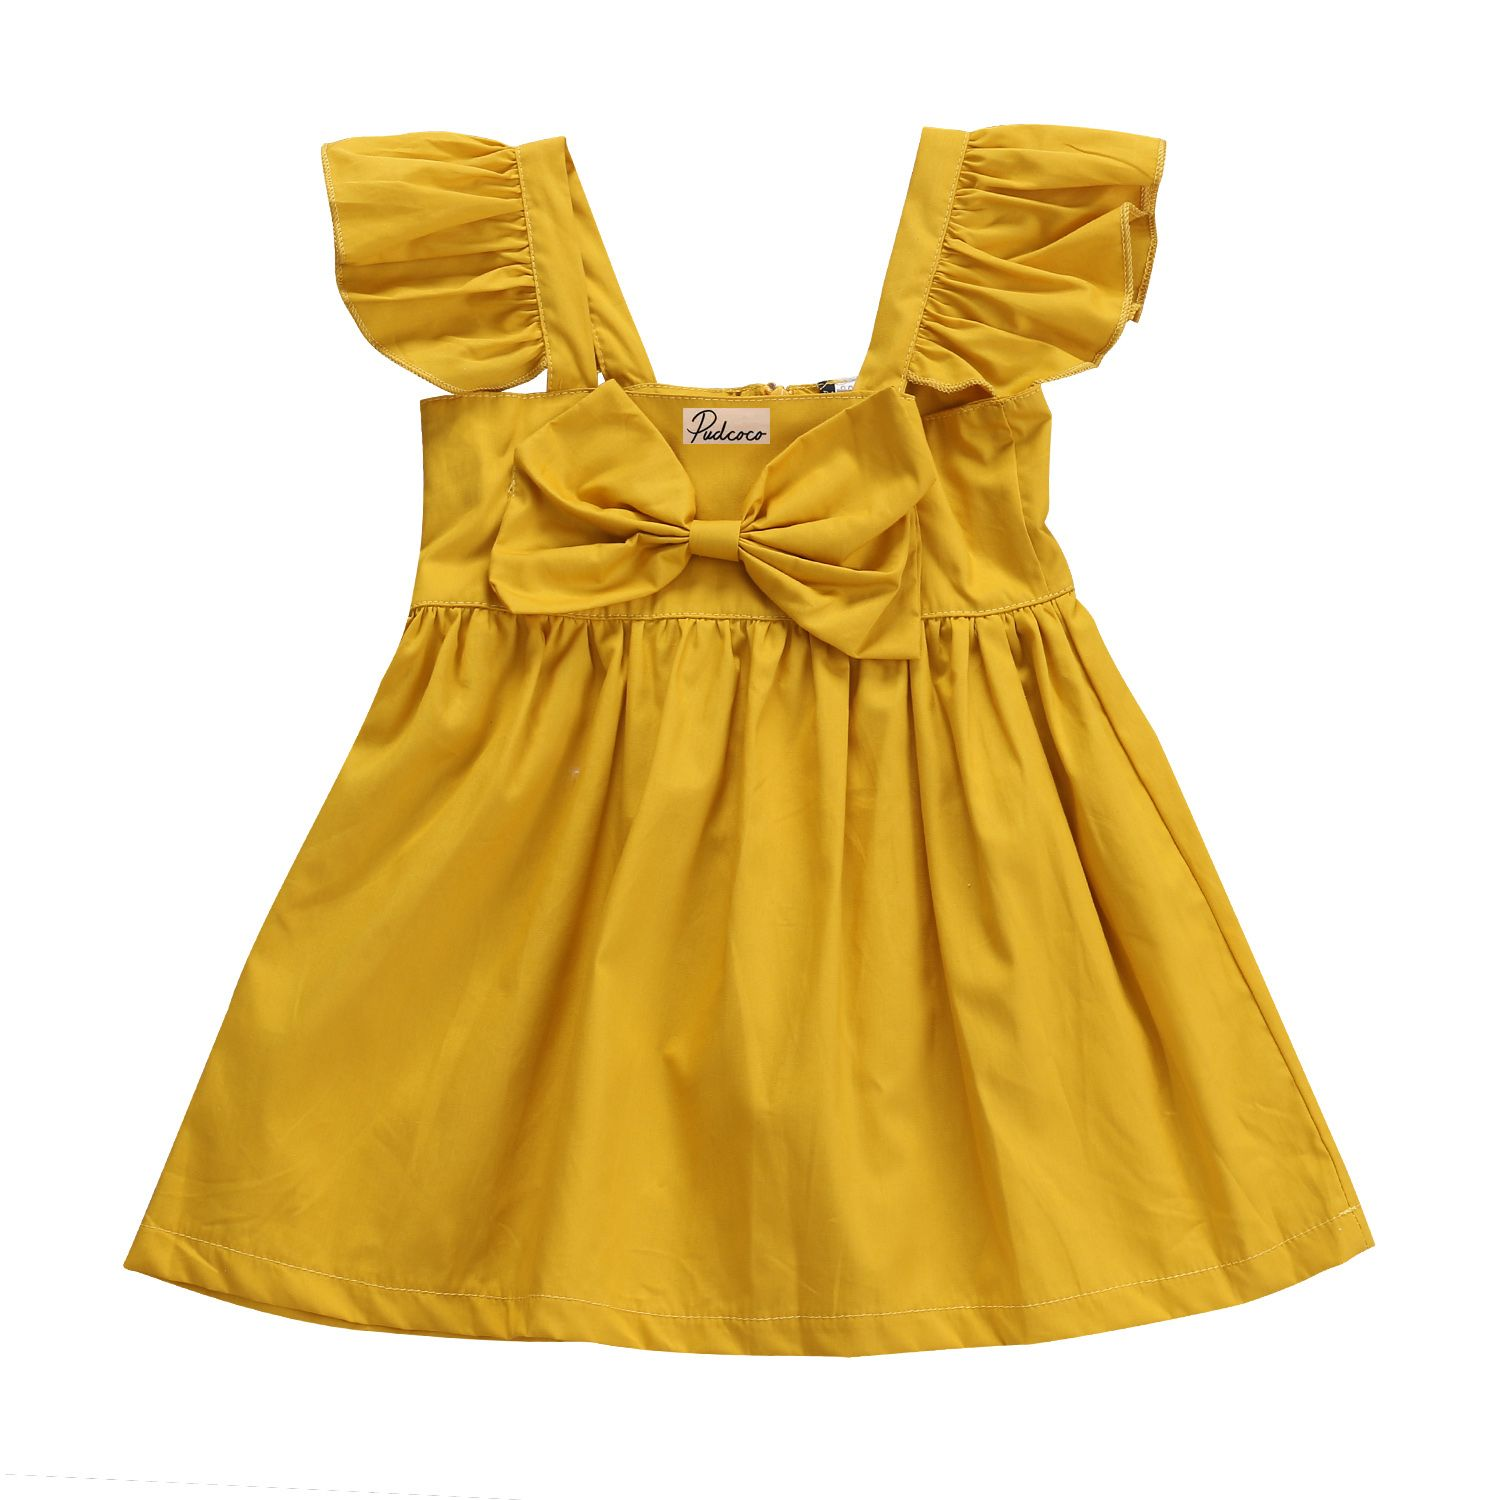 Newborn Infant Kids Baby Girls Clothes Sleeveless Bow Yellow Casual